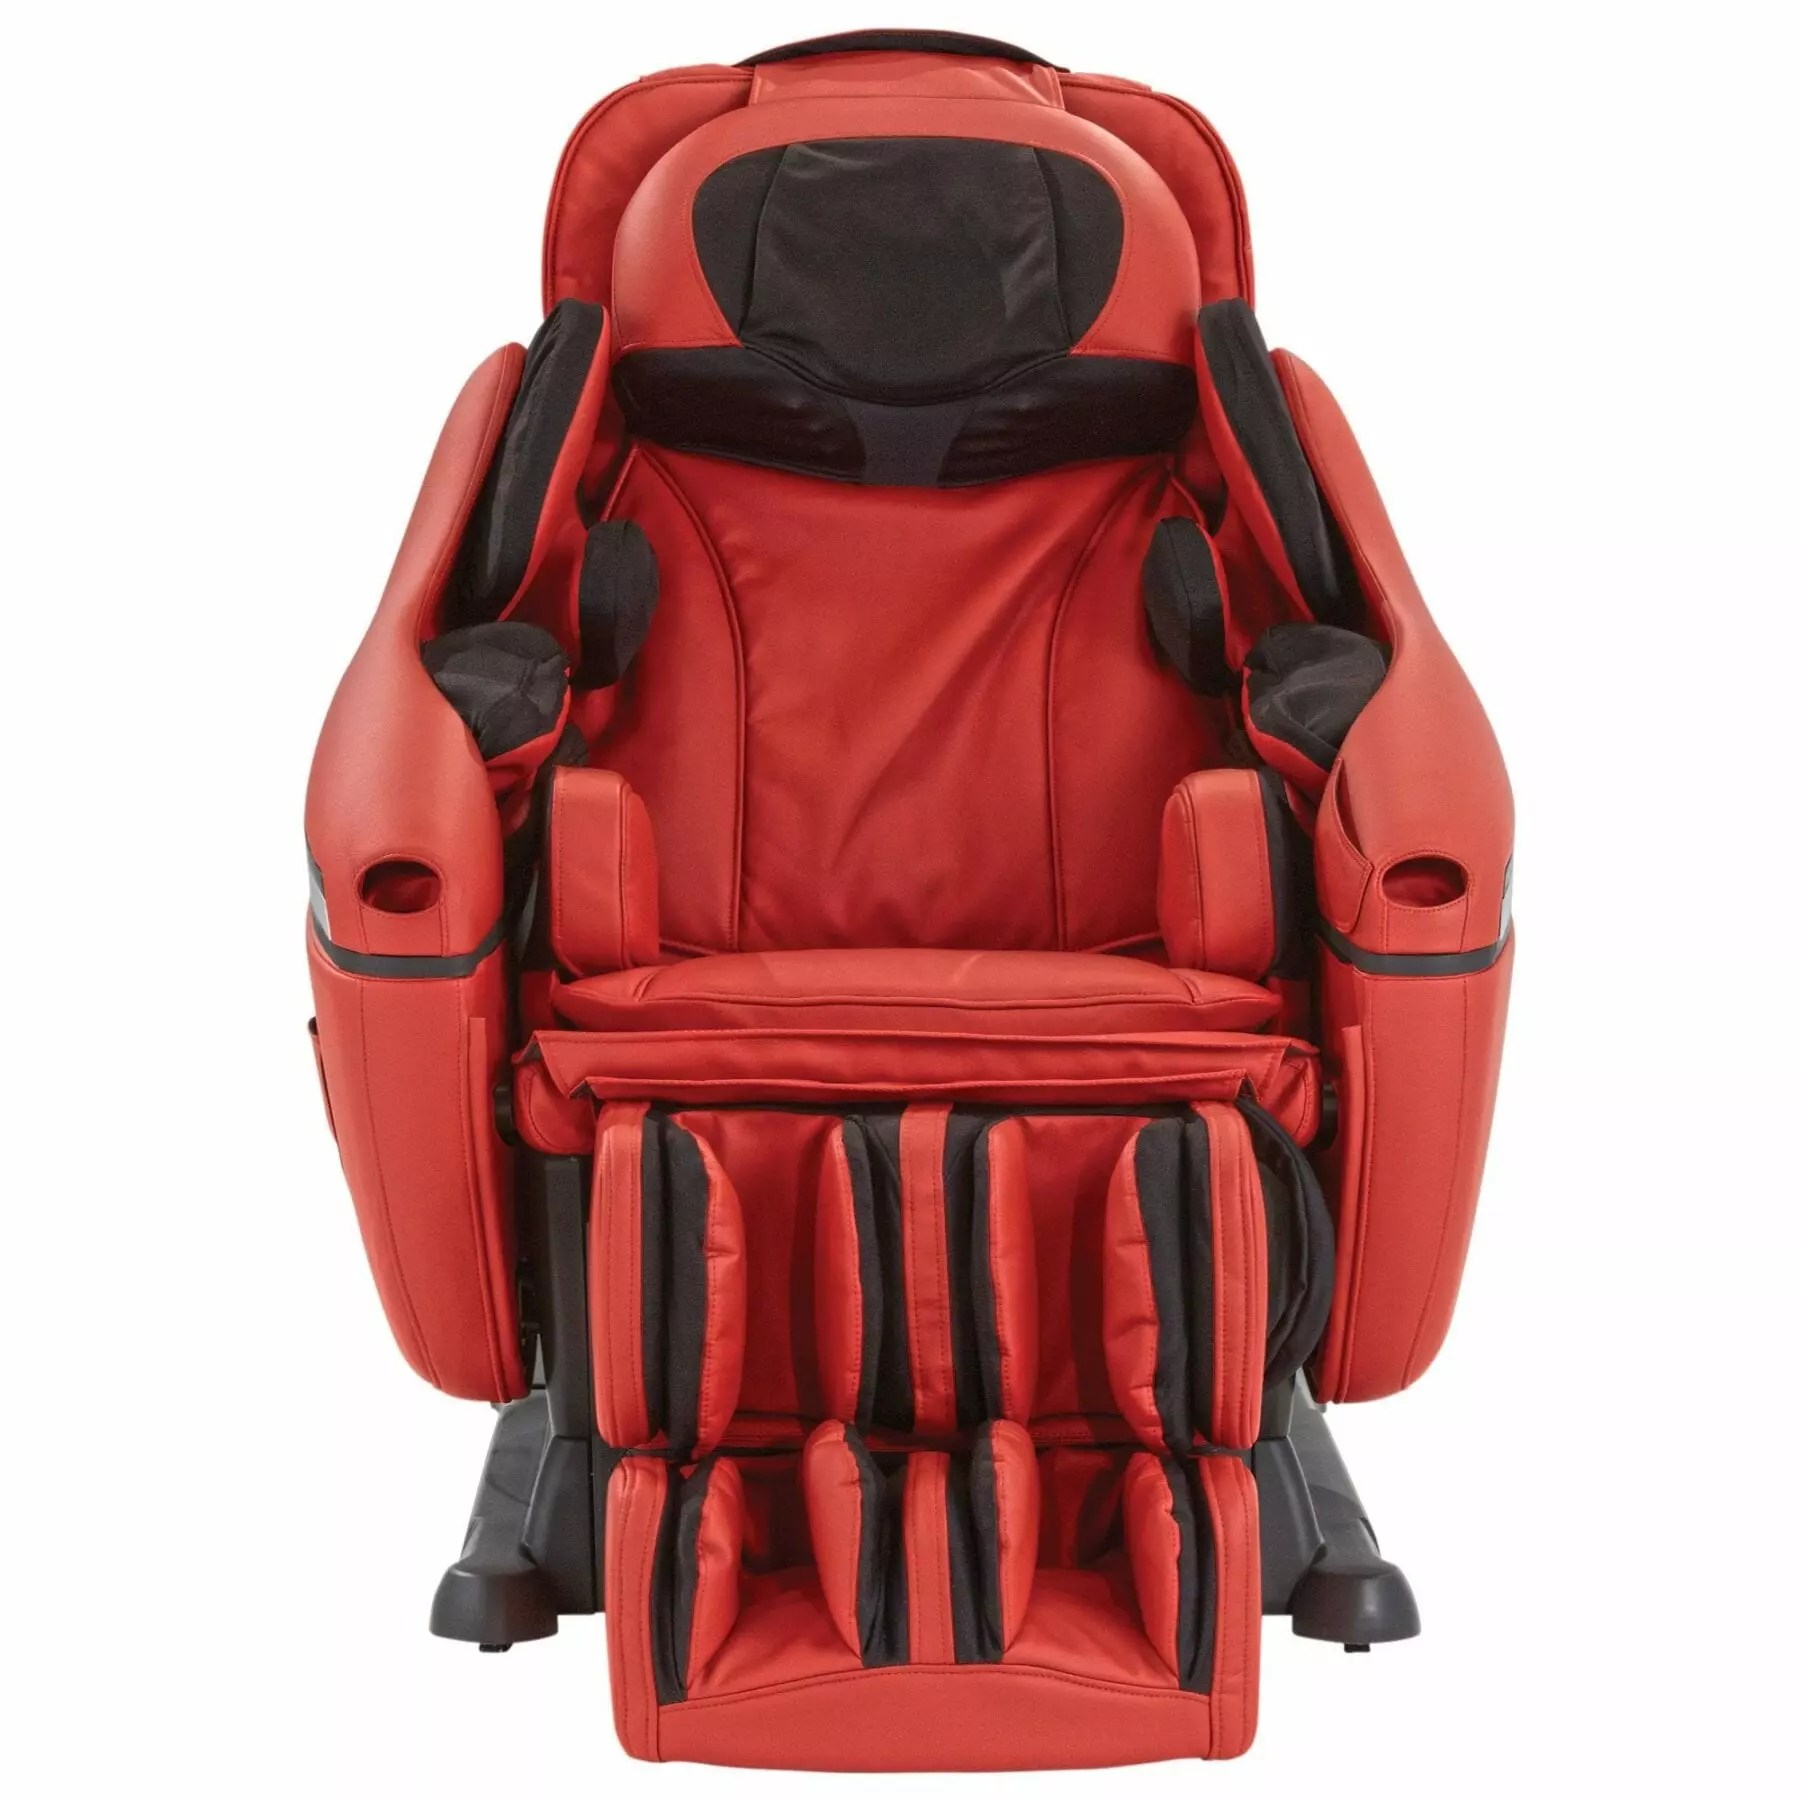 Inada Chair Dreamwave Considered The World 39s Best Massage Chair